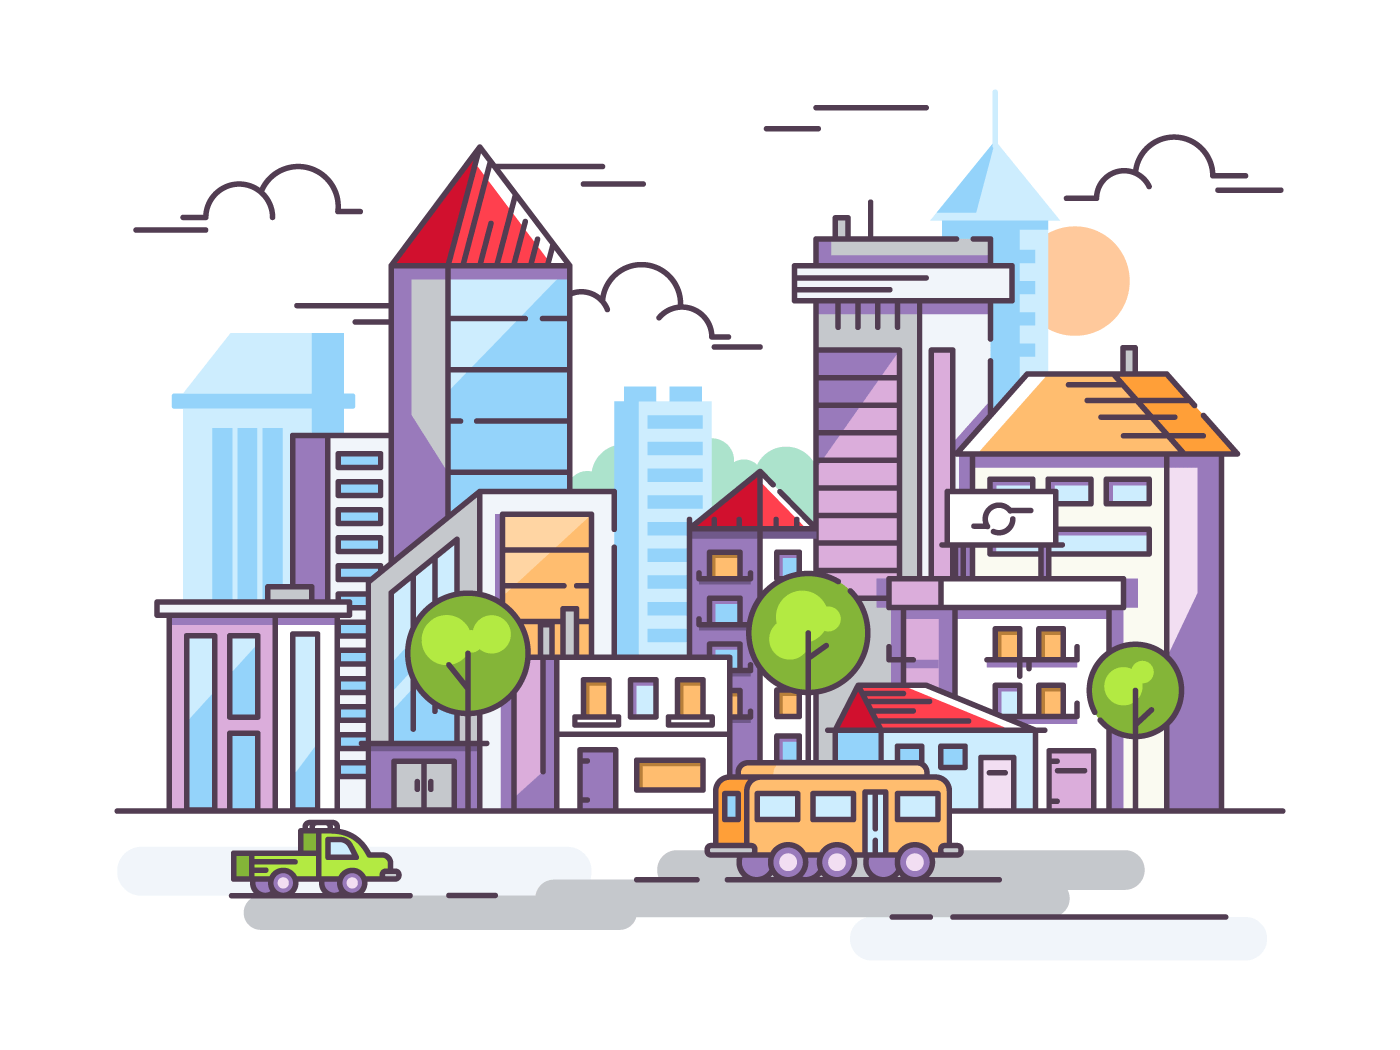 City street with tall houses and cars. Urban infrastructure in a linear style. Vector illustration